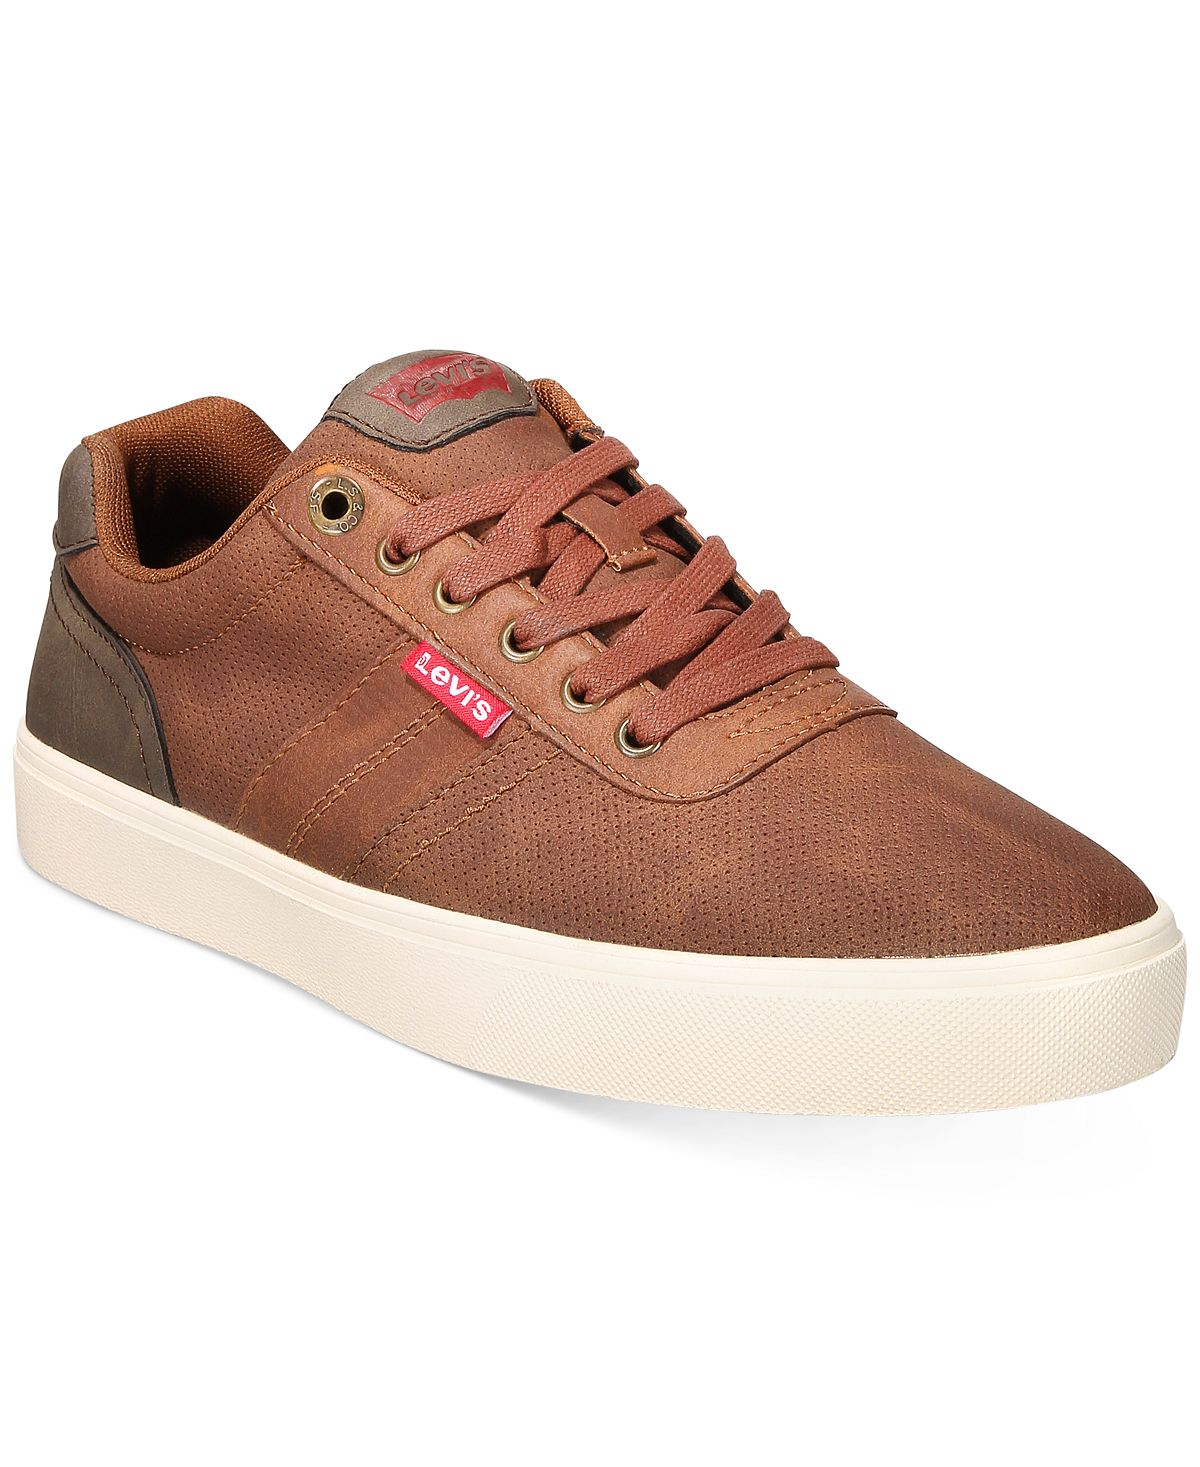 Levi's Miles Waxed Sneakers Tan/Brown